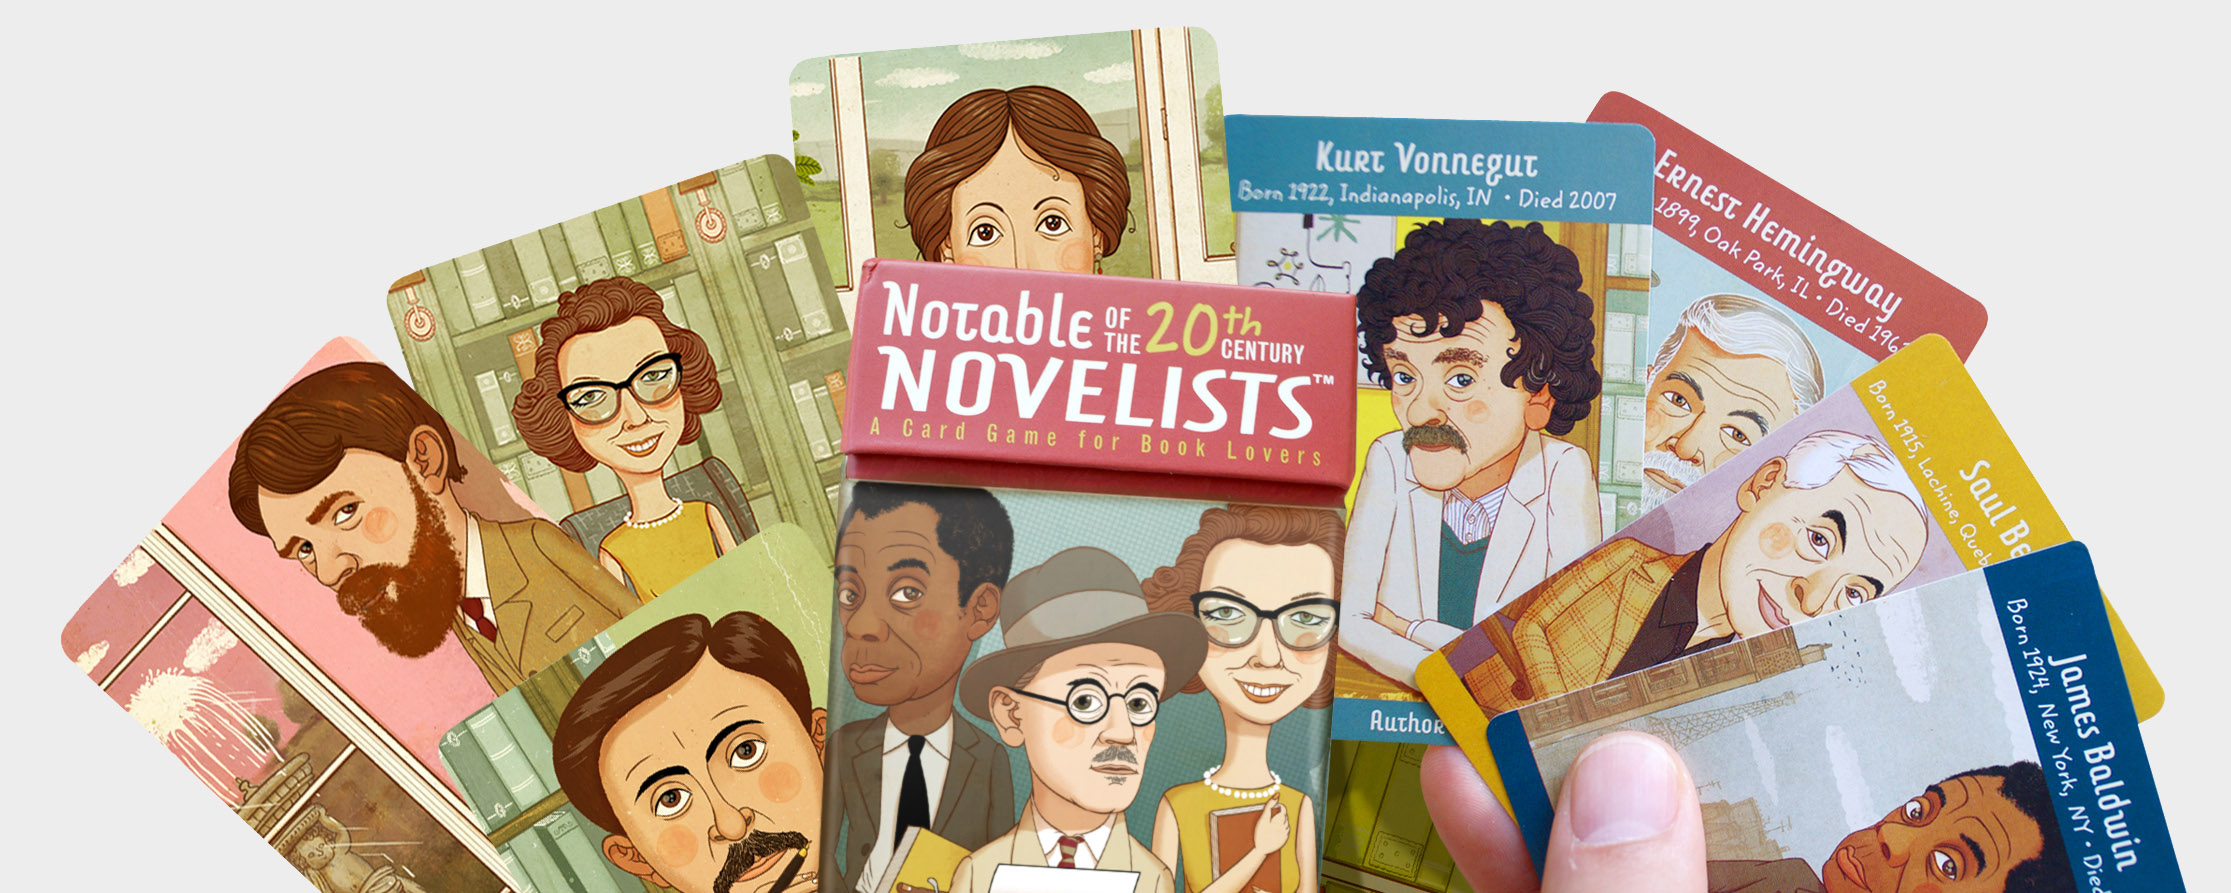 - For Calico, this card game features portraits of some of the worlds most well known 20th Century authors